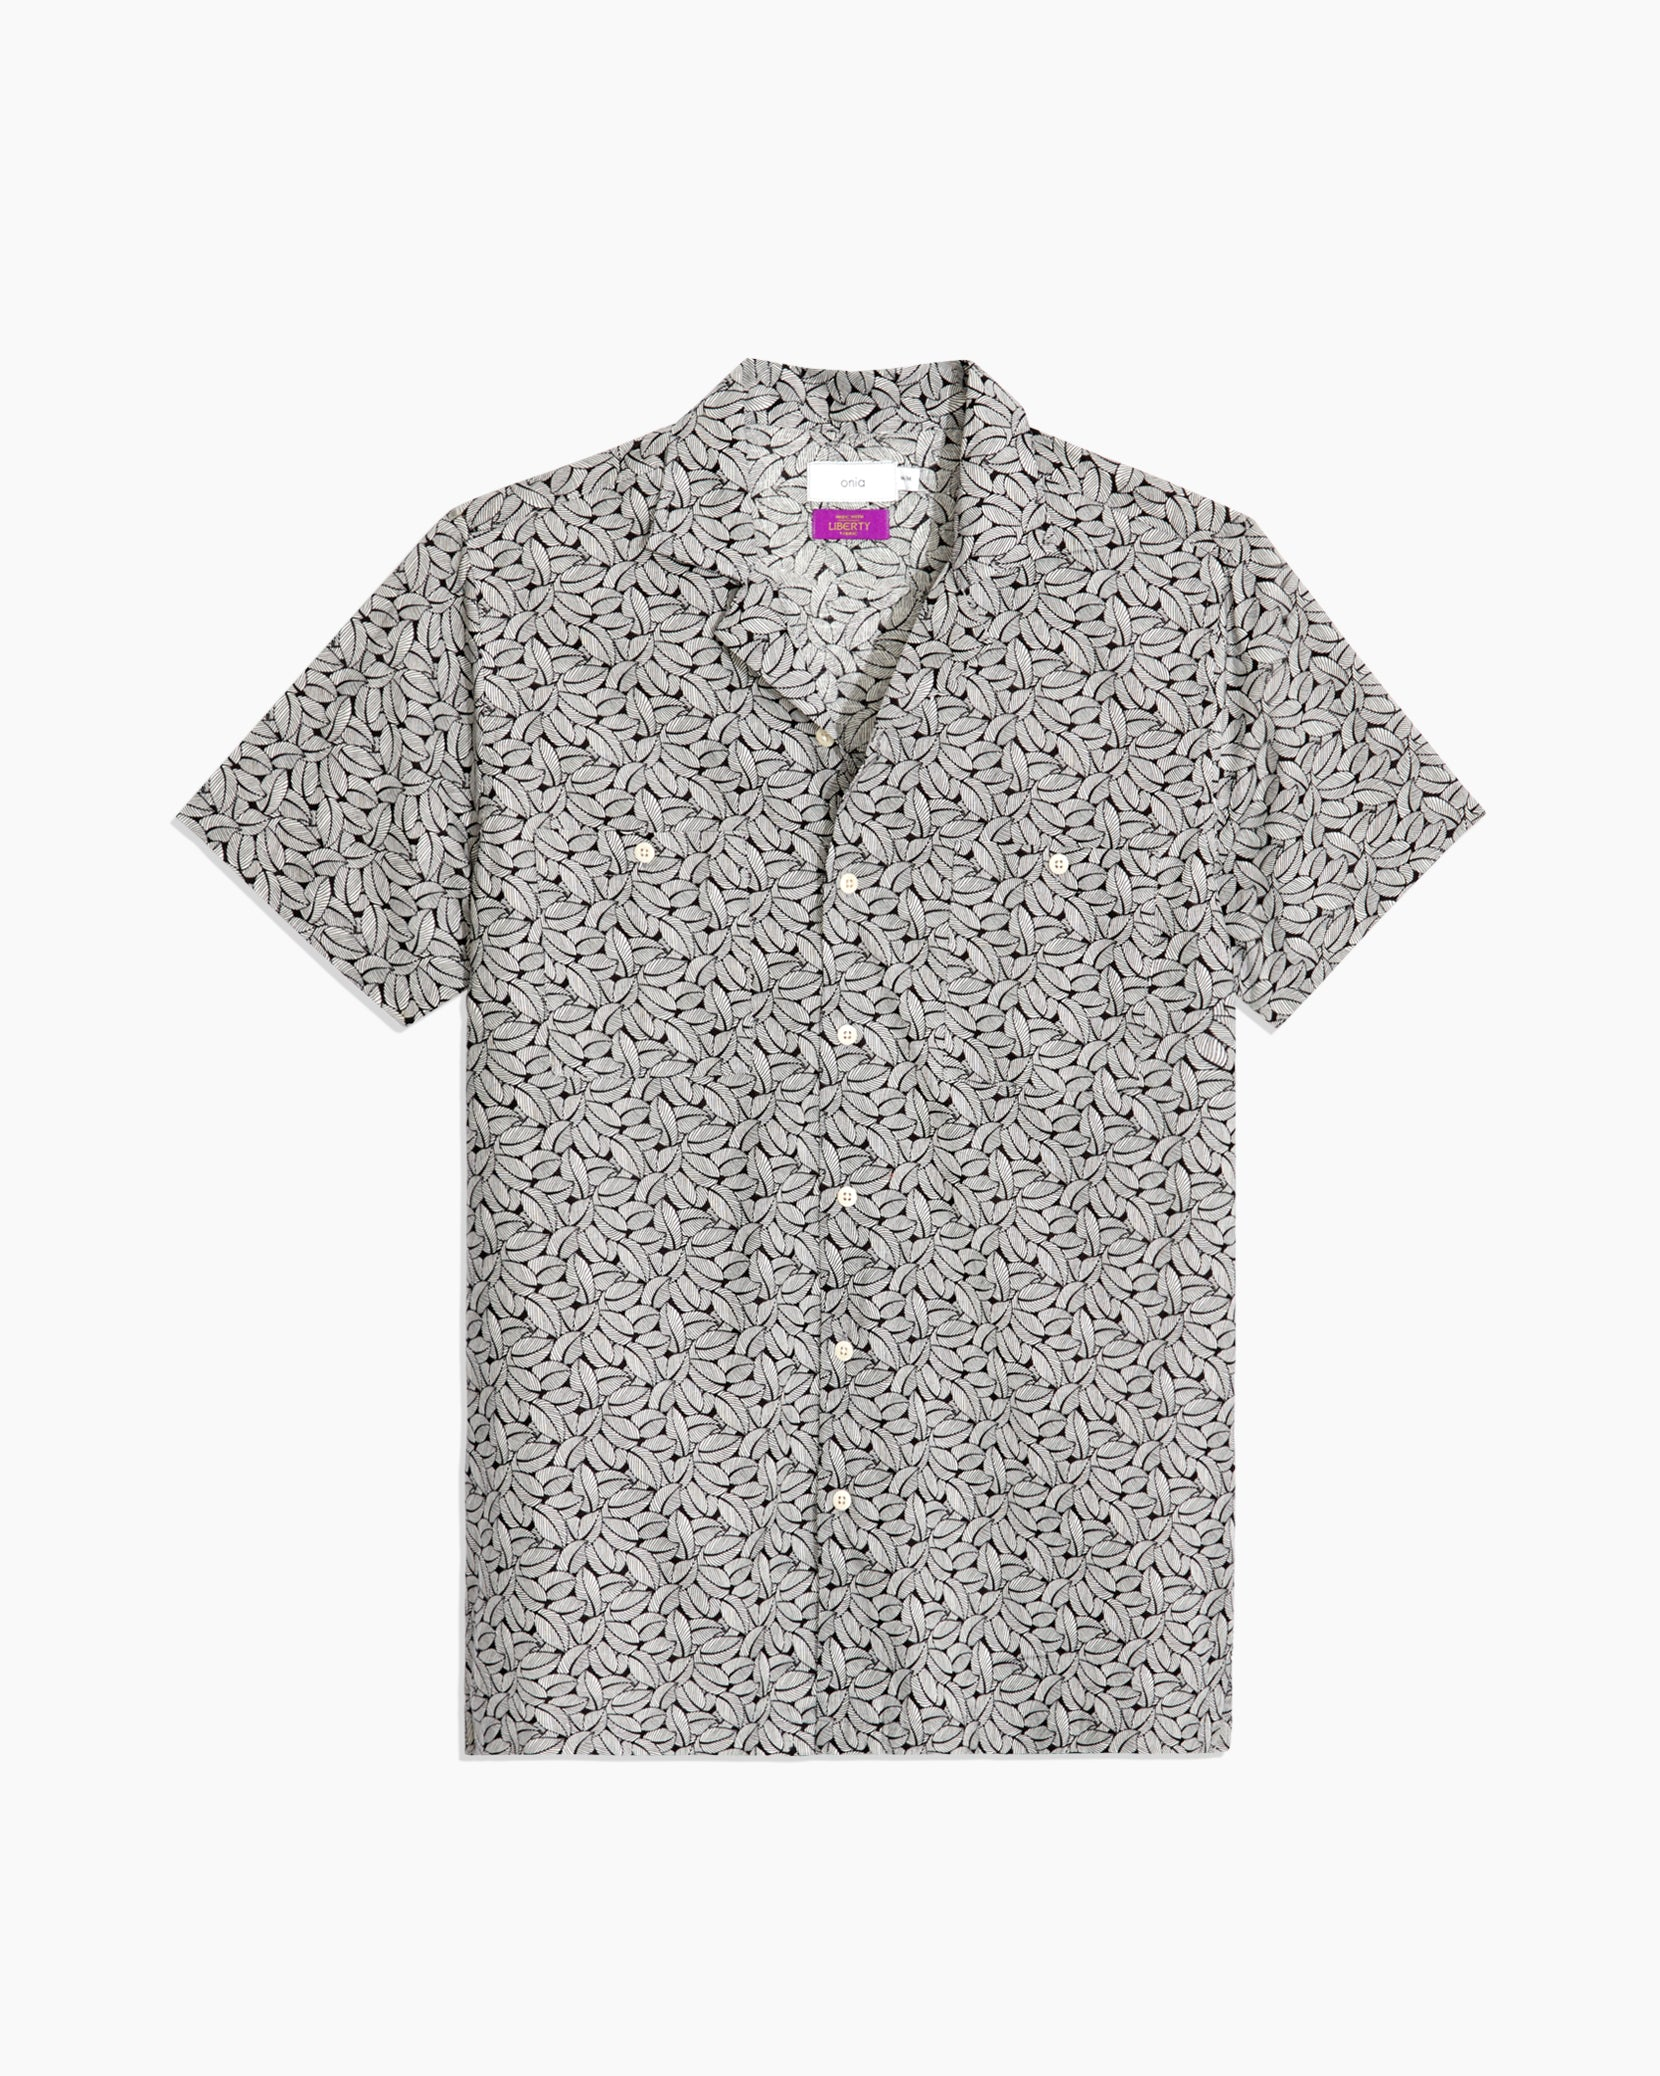 Linen Liberty Leaves Camp Shirt in Black - 1 - Onia